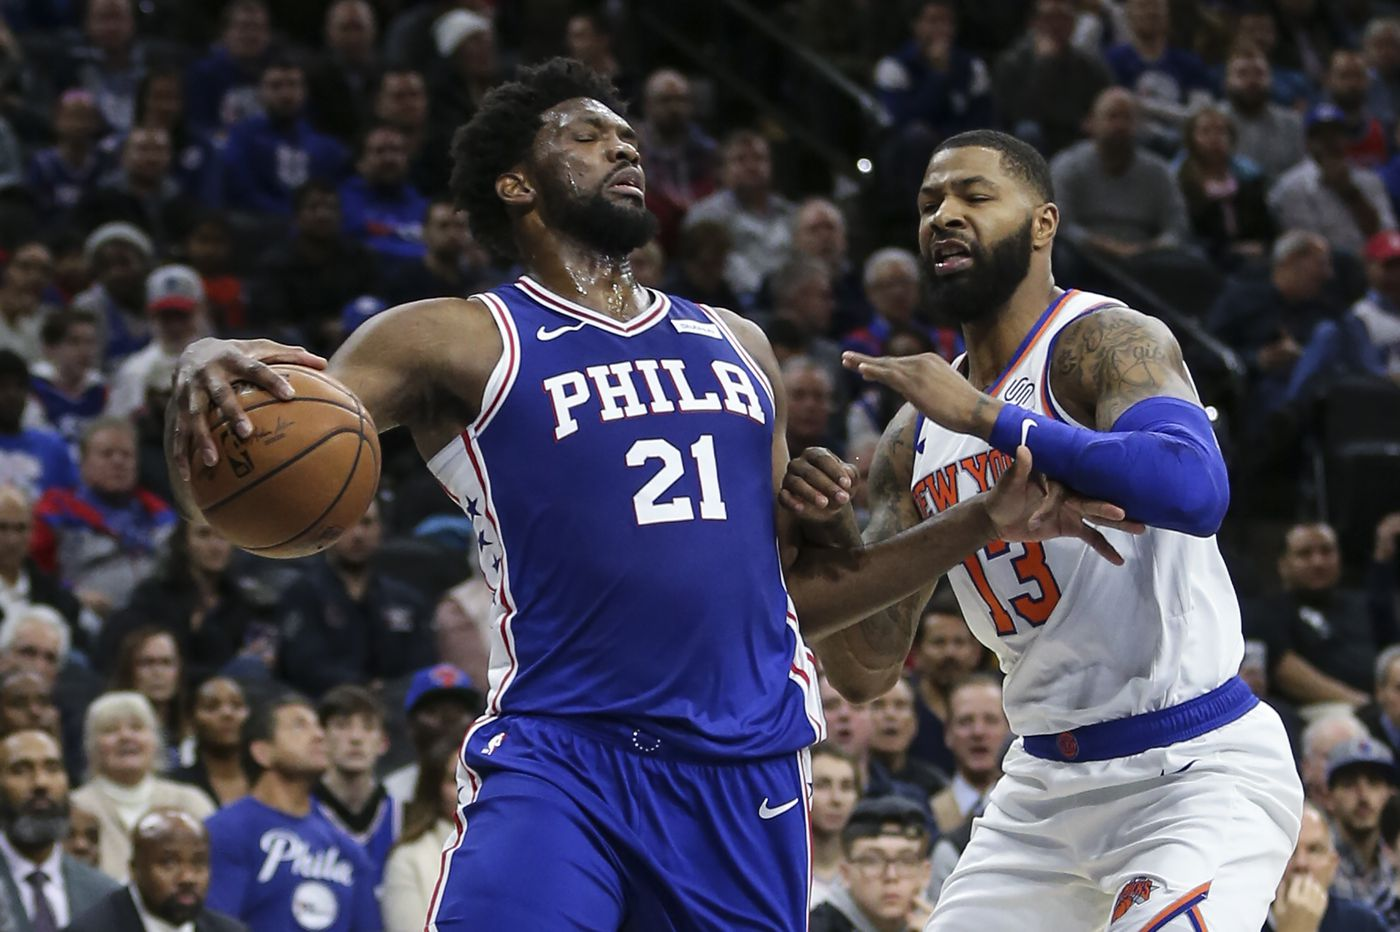 Marcus Morris loves returning to Philly, has no opinion on Sixers